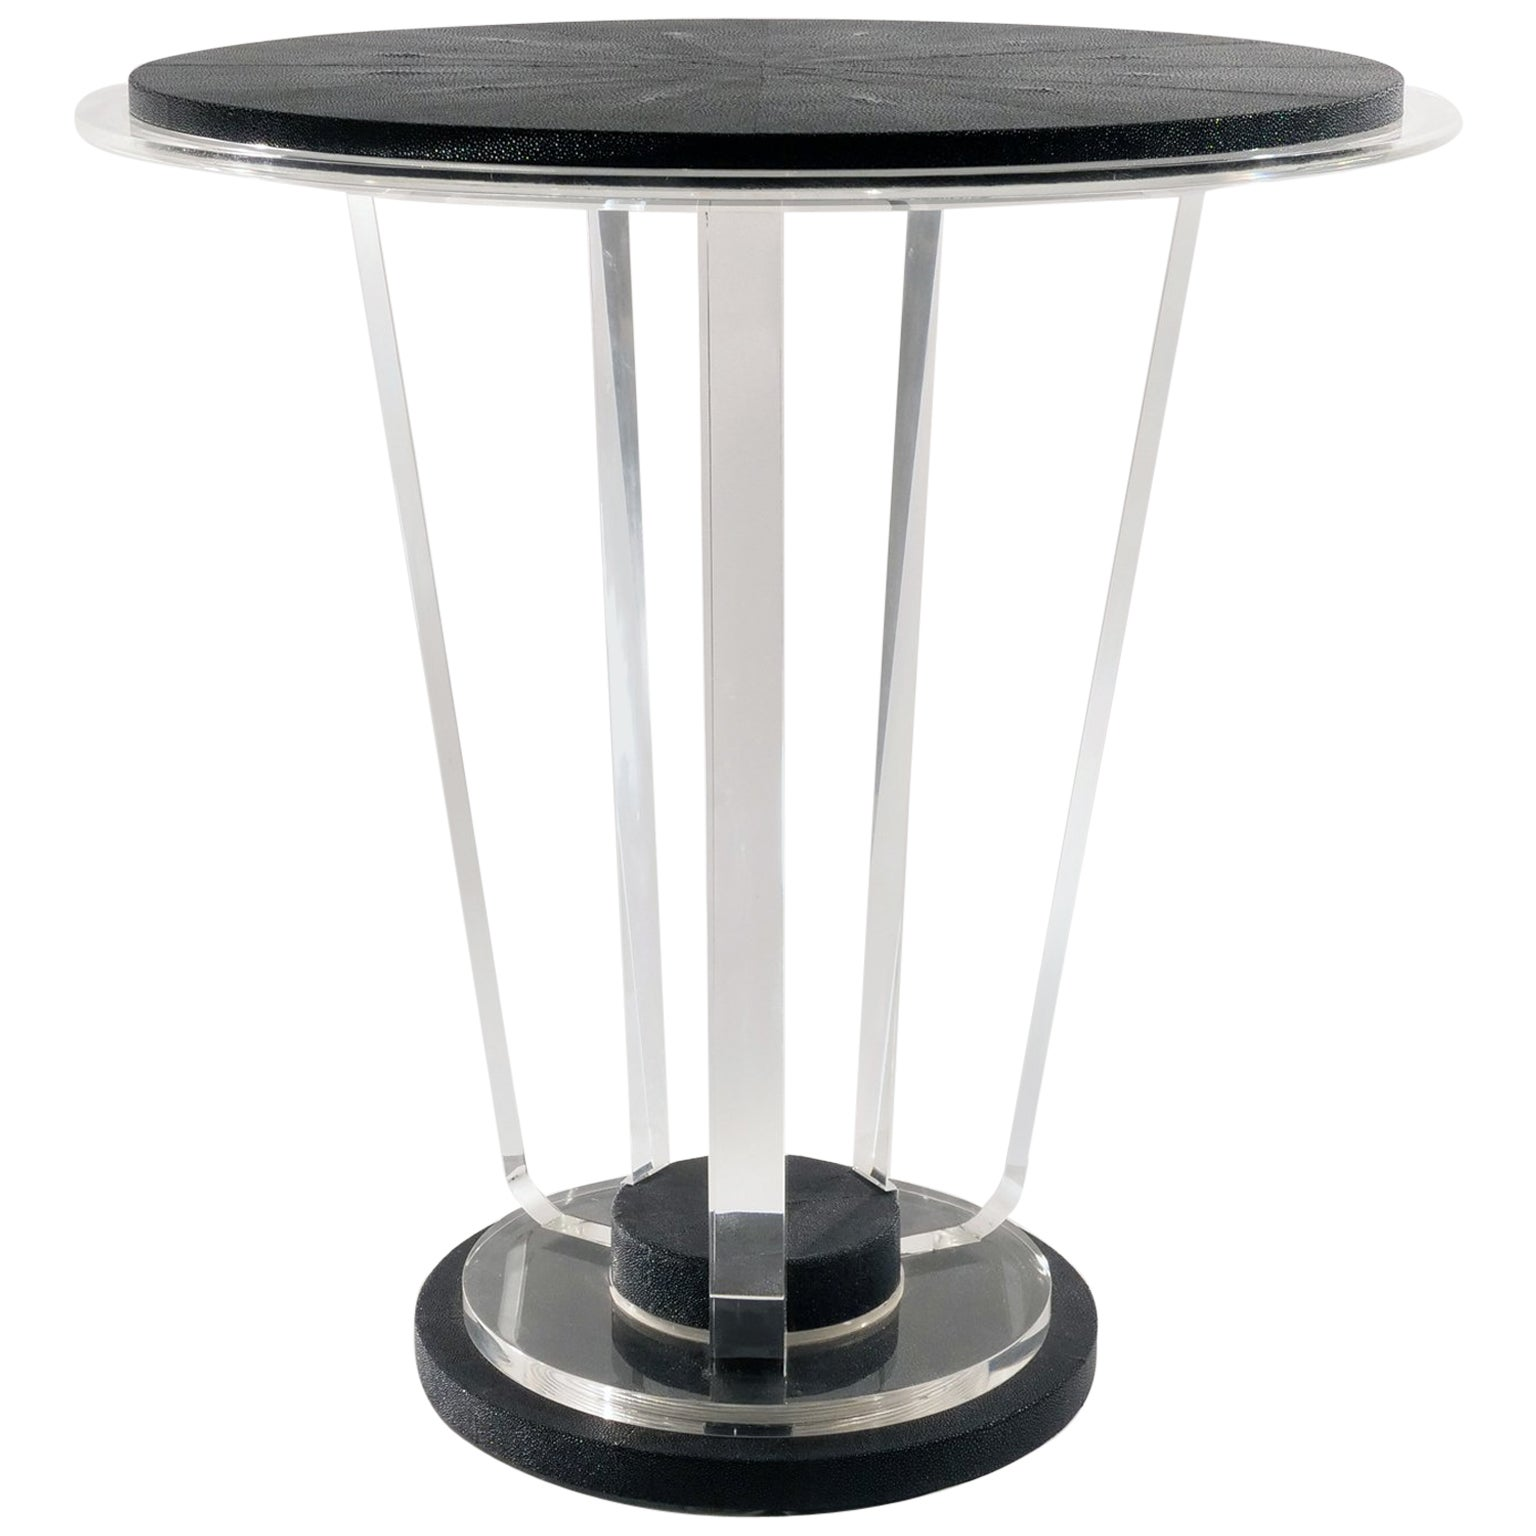 Art Deco Acrylic and Shagreen Round Modern Side Table, in Stock